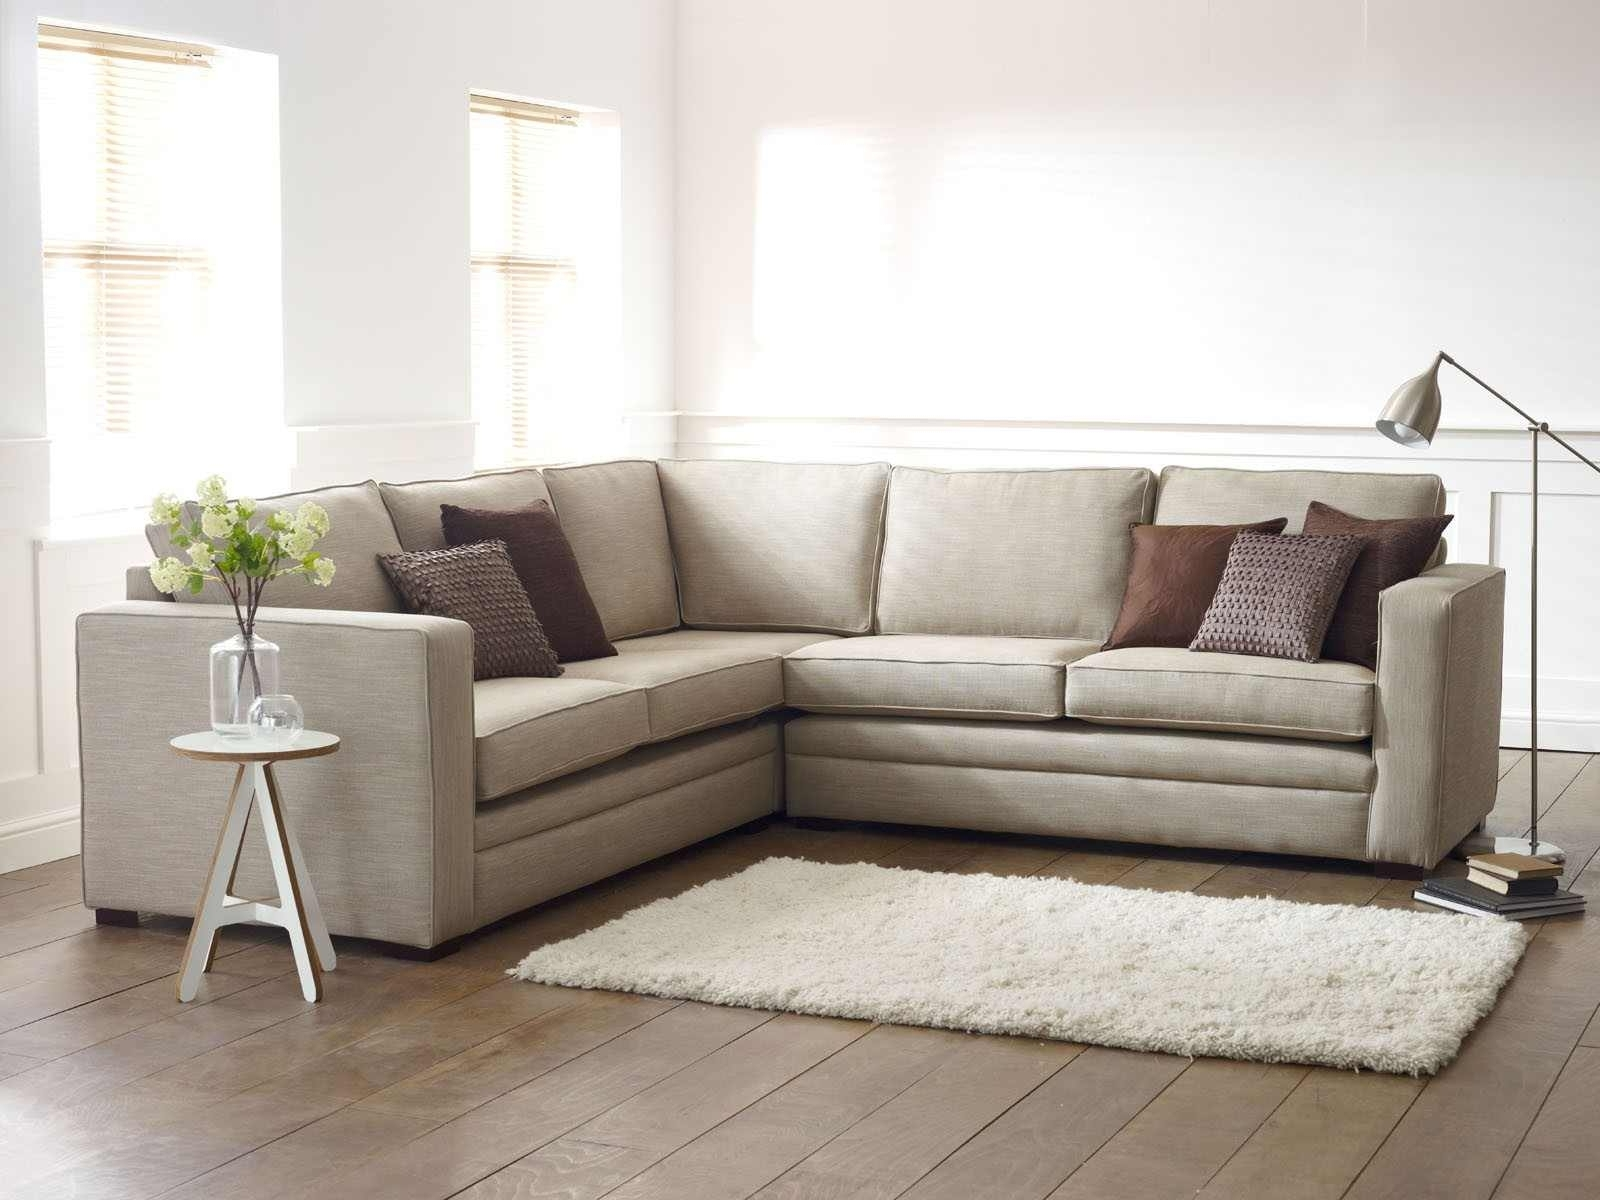 Best And Newest Sofa : L Shaped Sofa With 2 Recliners Ava Tufted Sleeper Sofa L With L Shaped Sectional Sofas (View 2 of 20)